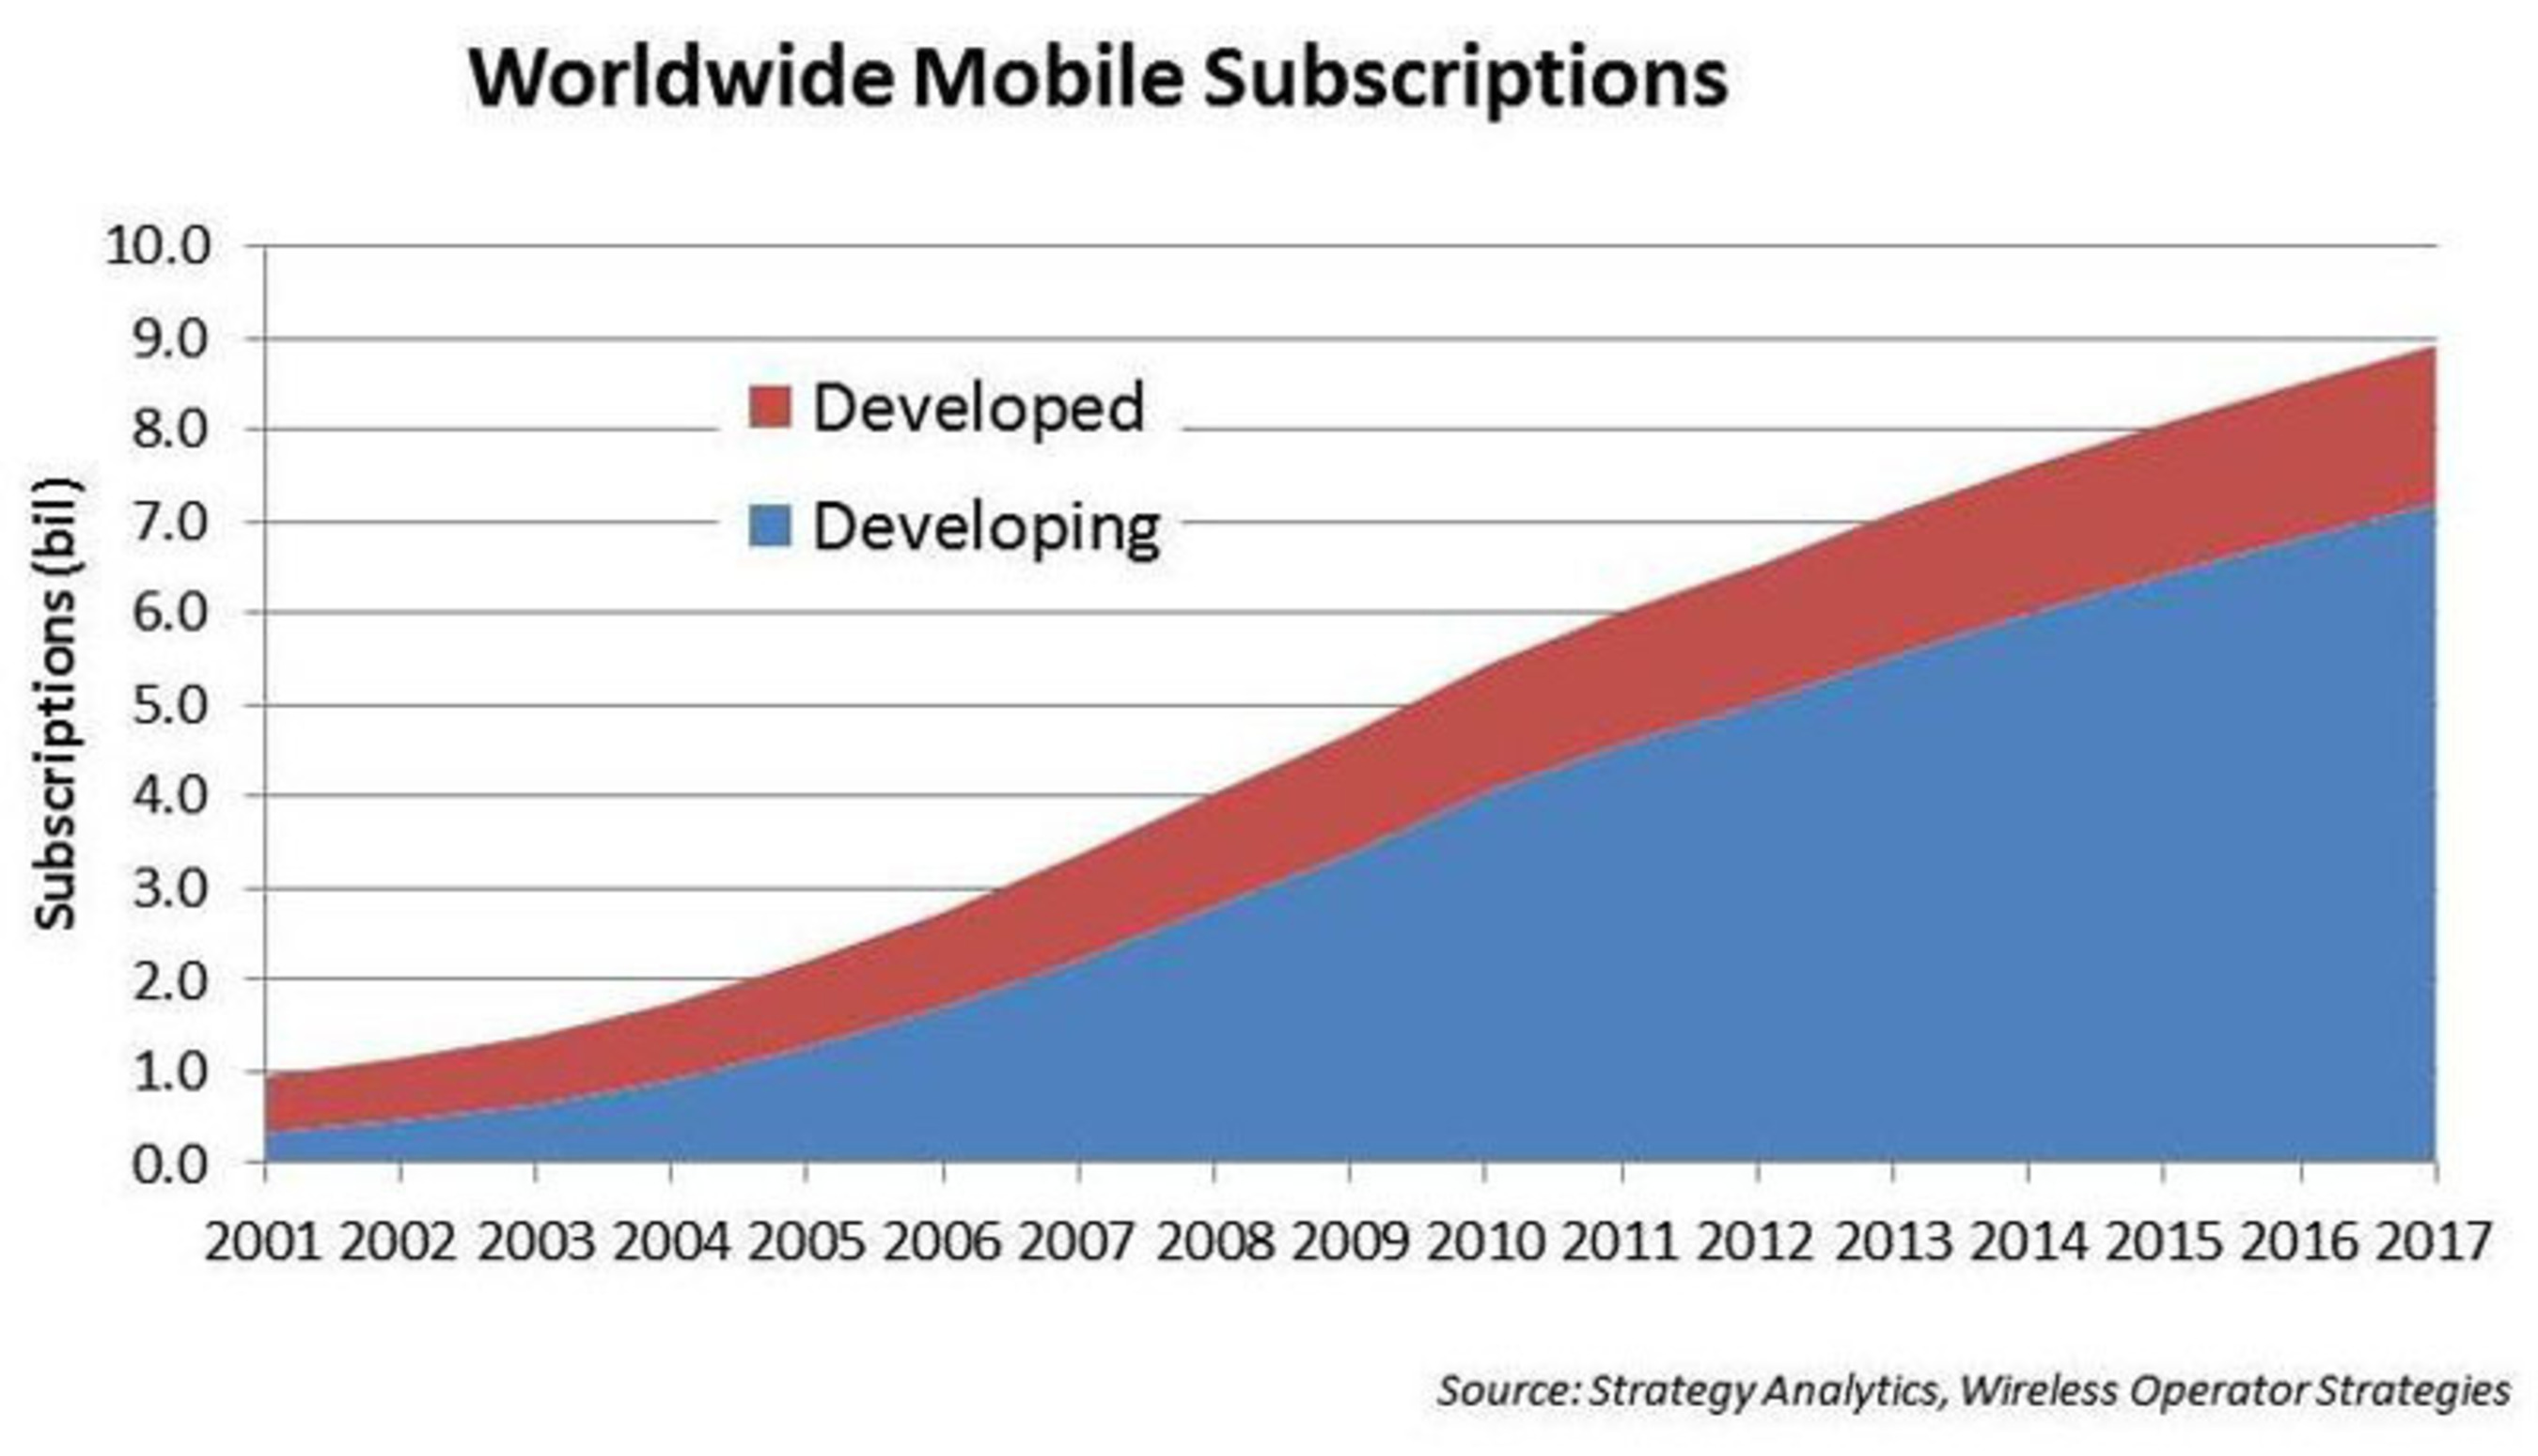 Strategy Analytics: 80 percent of Mobile Subscribers Will be in Developing Countries by 2017